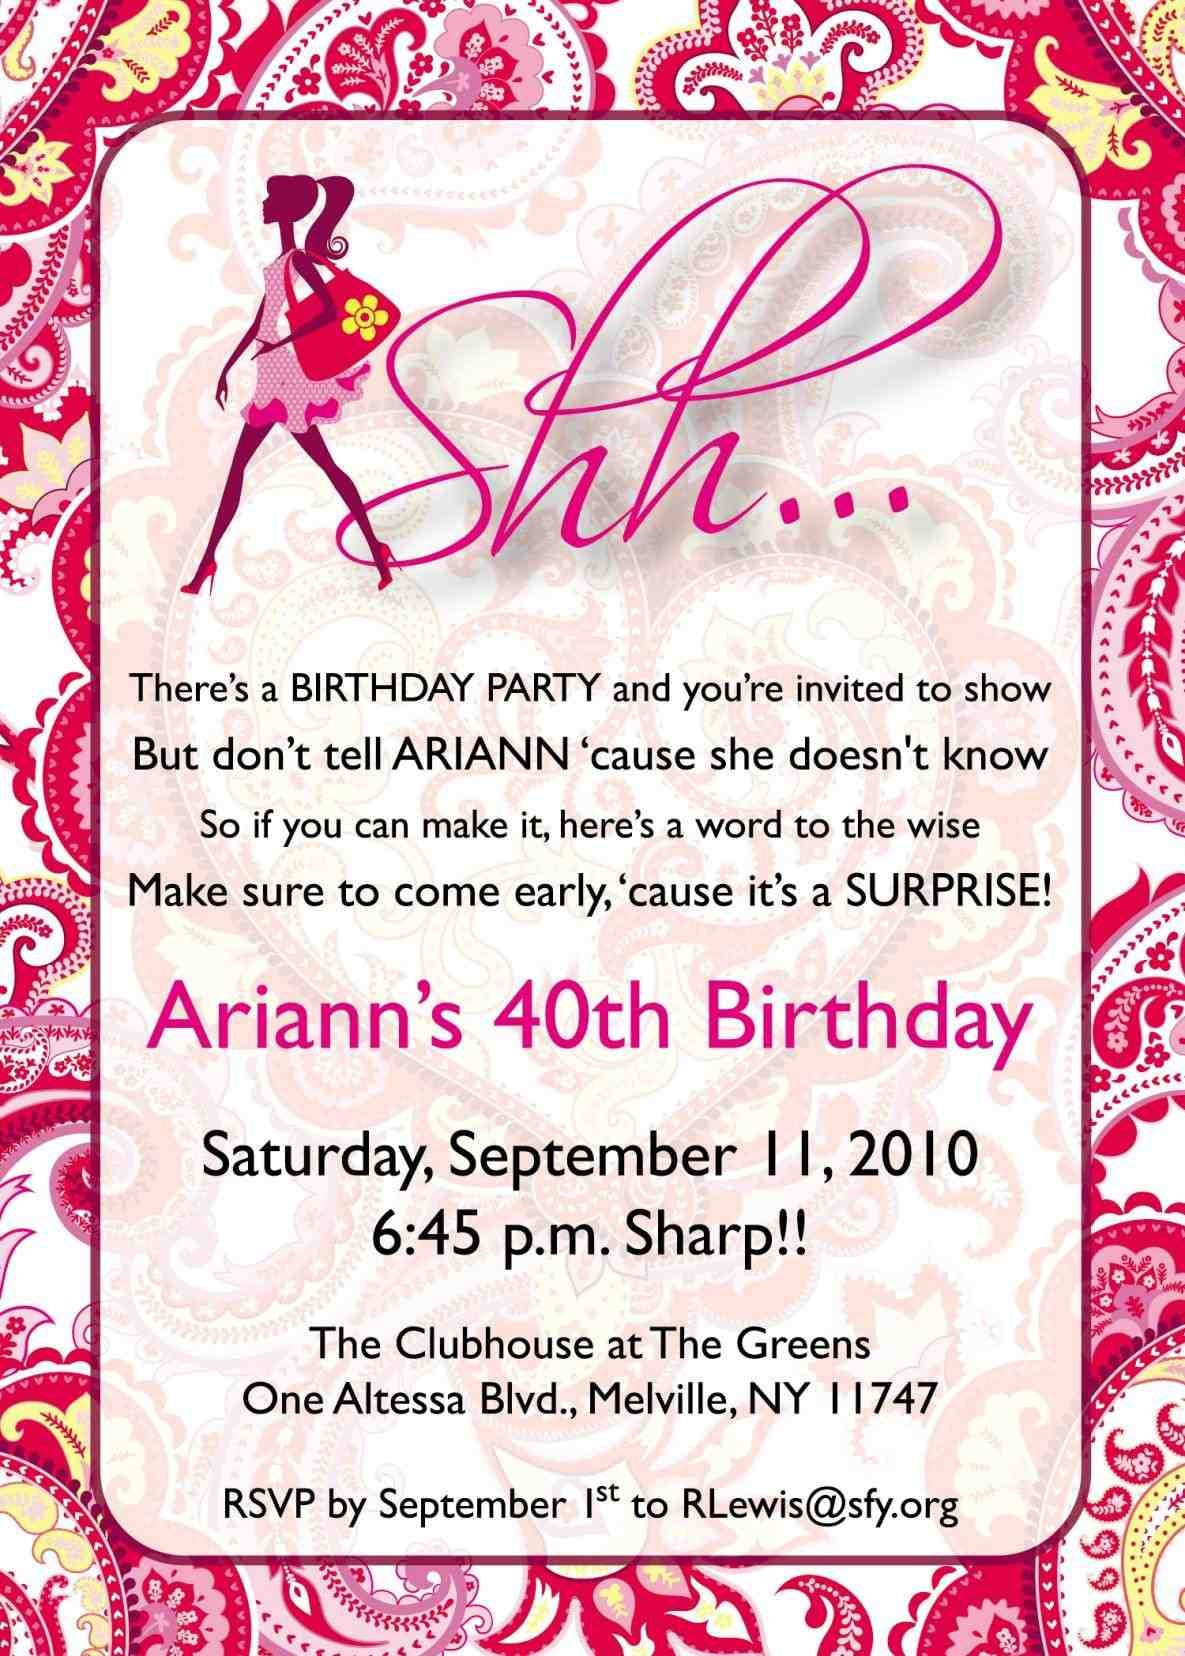 Gallery photo gallery photo gallery photo gallery photo 40th gallery photo gallery photo gallery photo gallery photo 40th birthday invitation wording for men combined filmwisefo